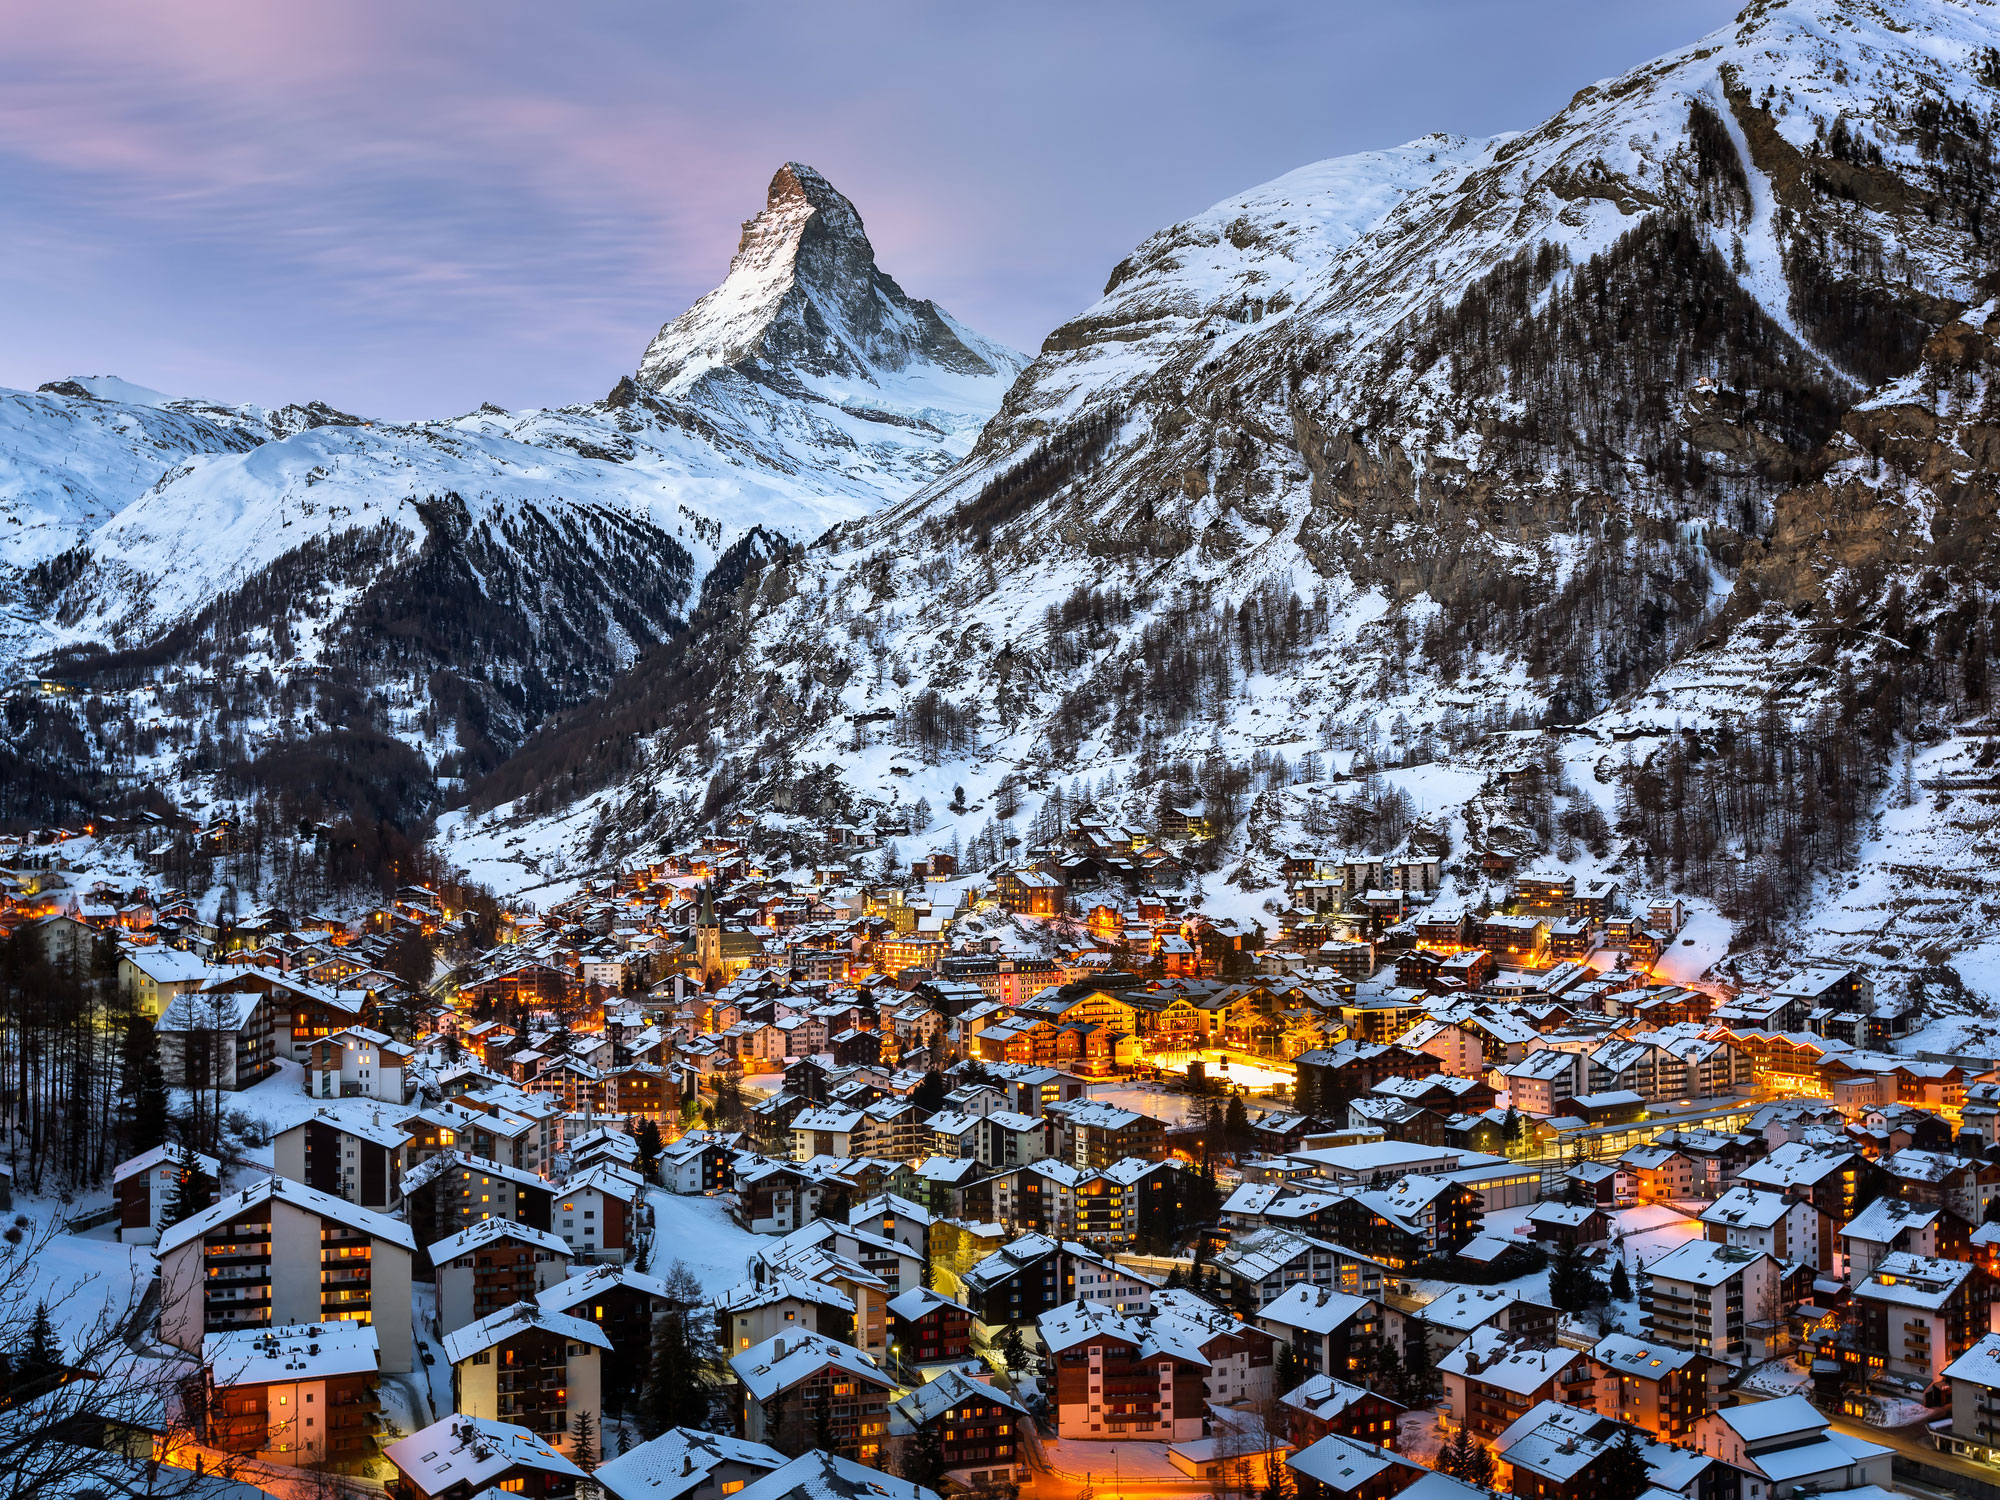 36 Days To Christmas The Best Places To Visit In Switzerland Days To Christmas days to christmas 33 Days To Christmas: The Best Places To Visit In Switzerland 🎁 36 Days To Christmas The Best Places To Visit In Switzerland